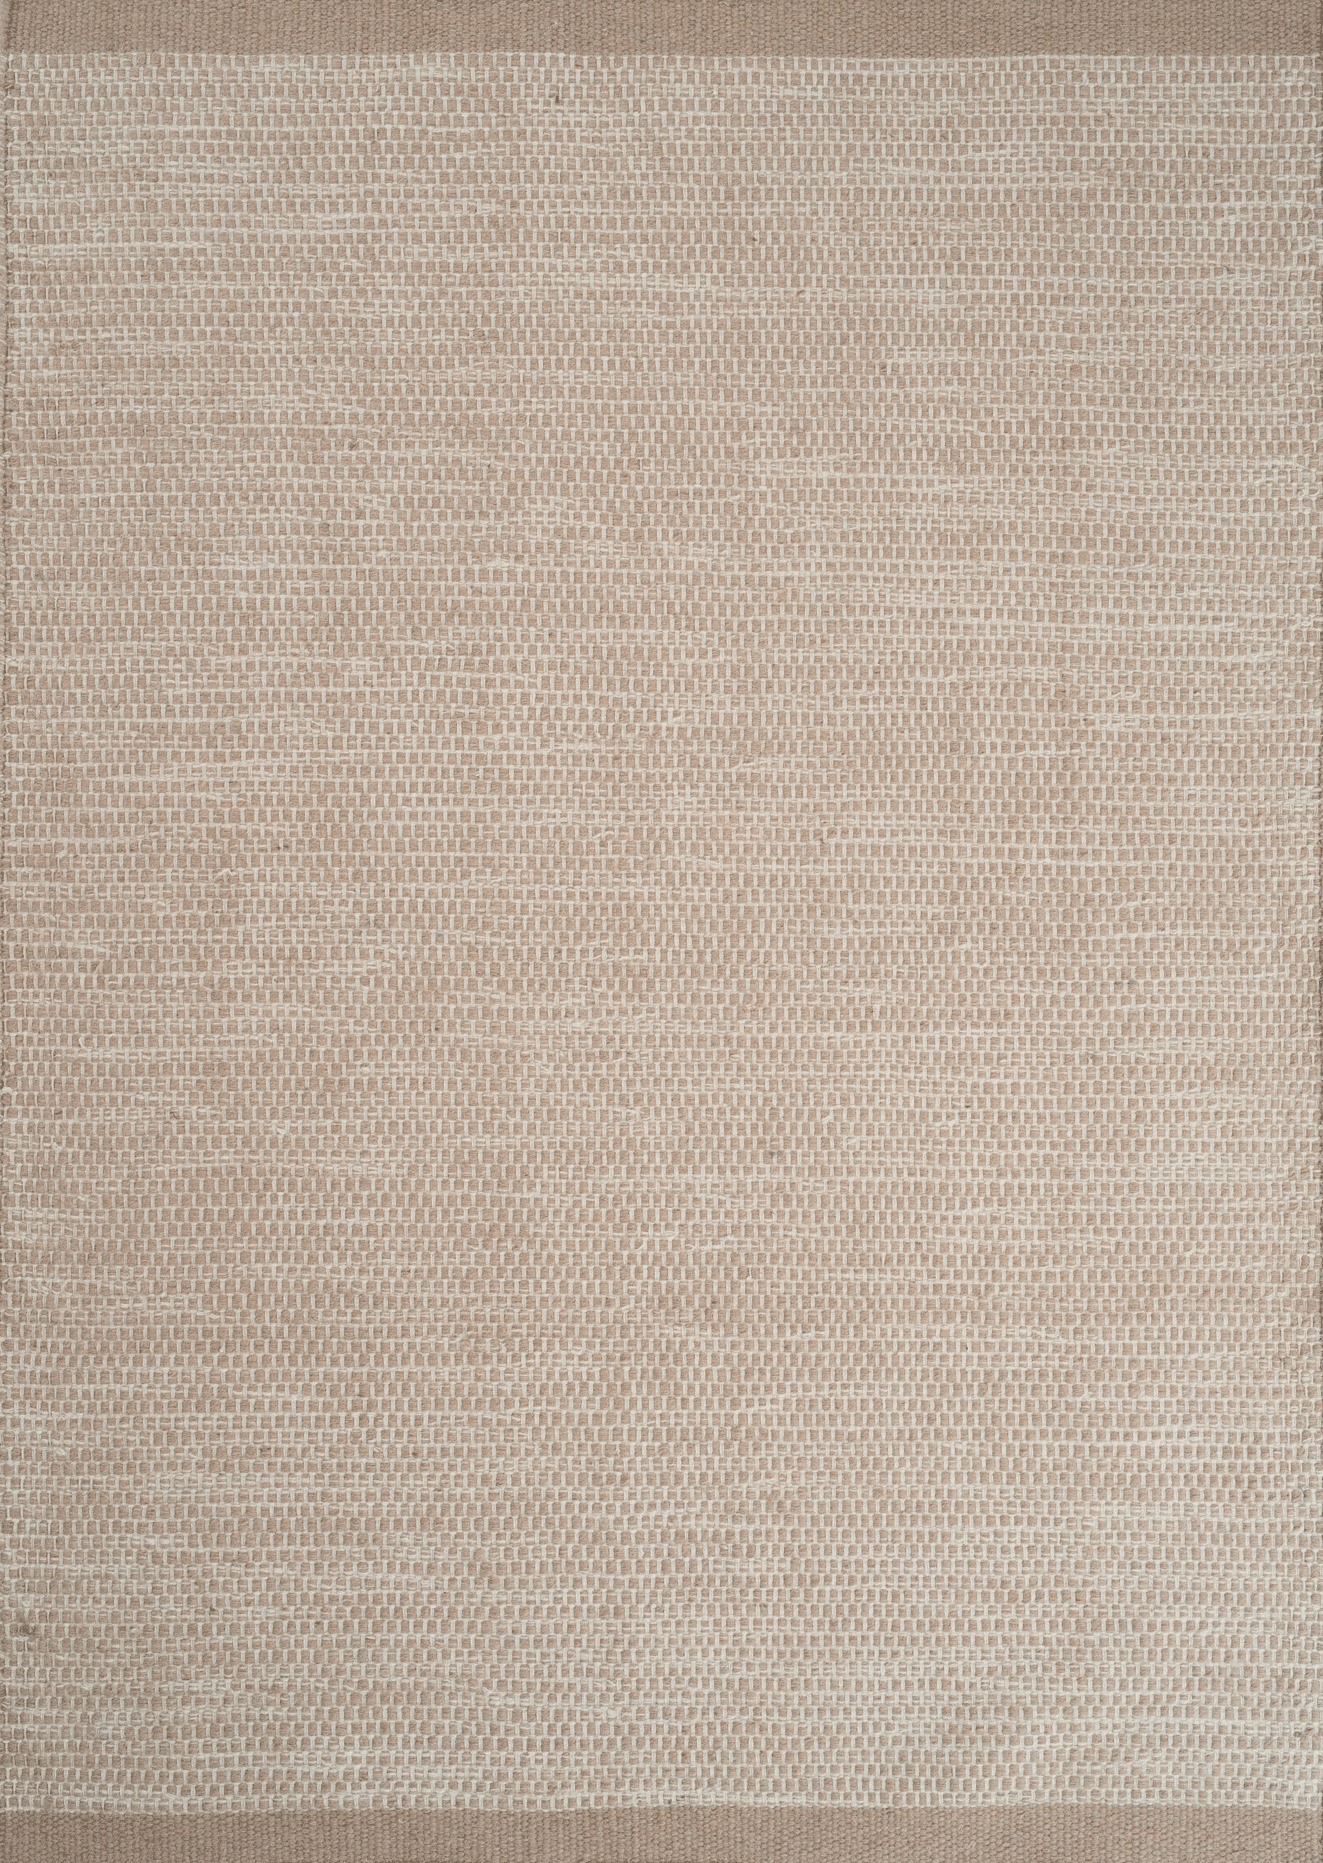 The Asko rug in beige by Linie Design comes in a gorgeous beige colour, and is the perfect compliment to a minimalist interior. Part of the Asko range, this rug is produced in India and is made of 90% wool / 10% cotton.